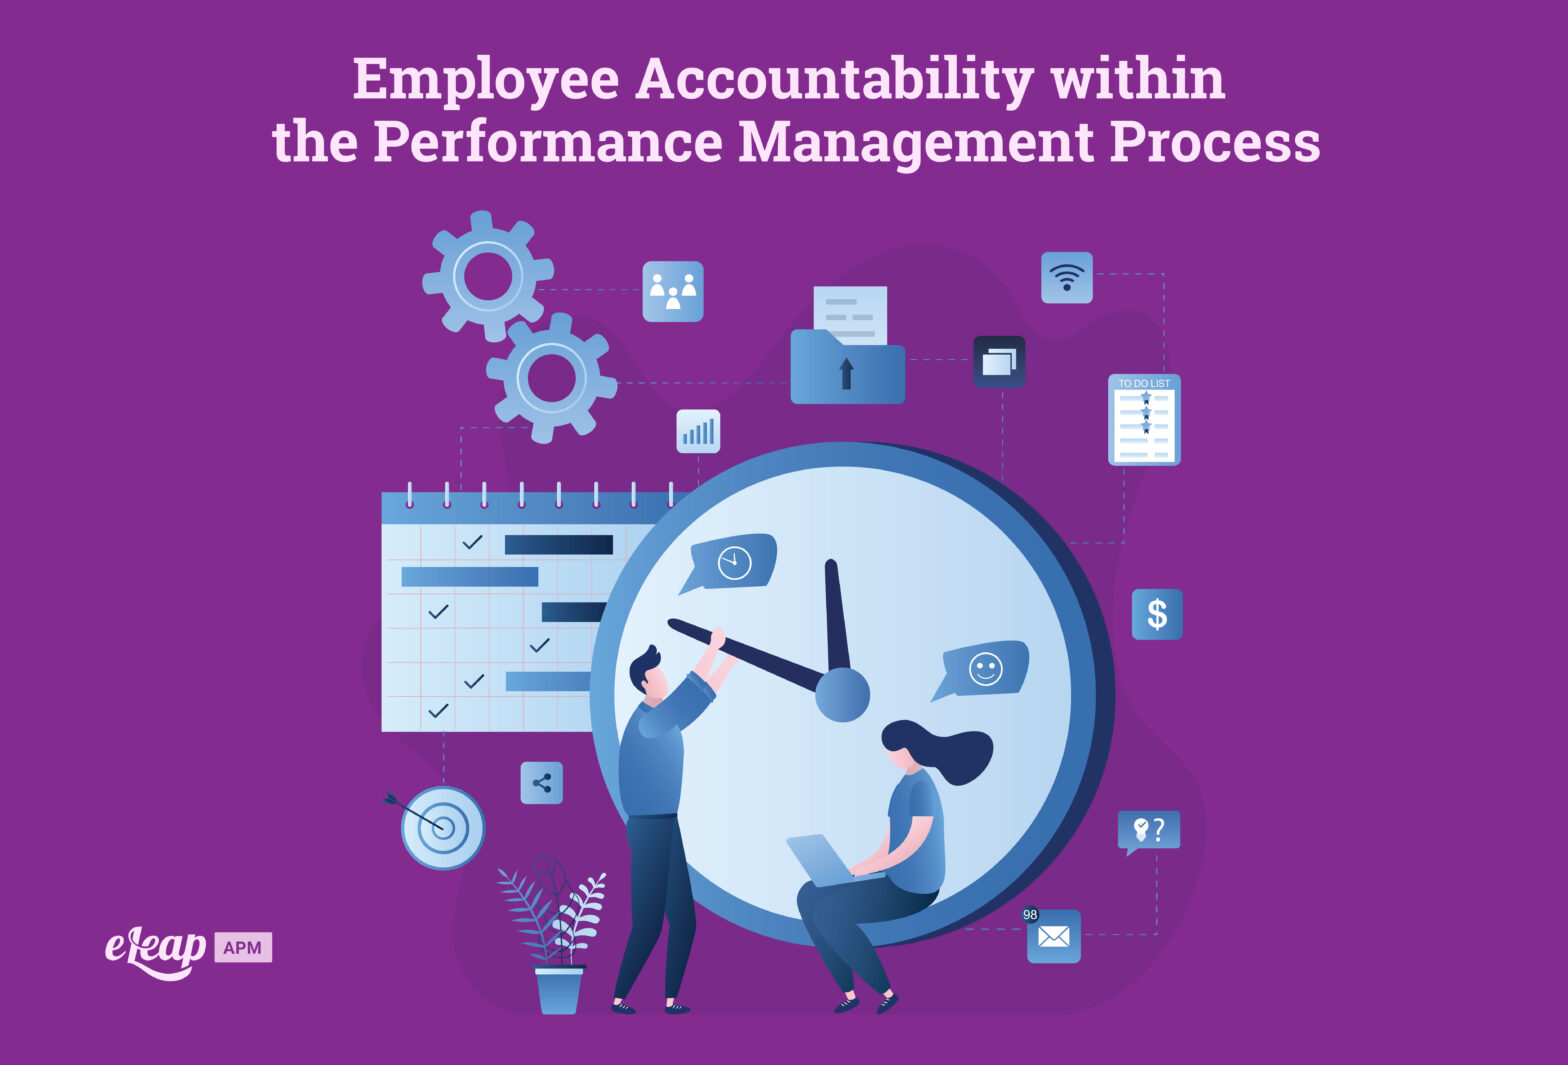 Employee Accountability within the Performance Management Process